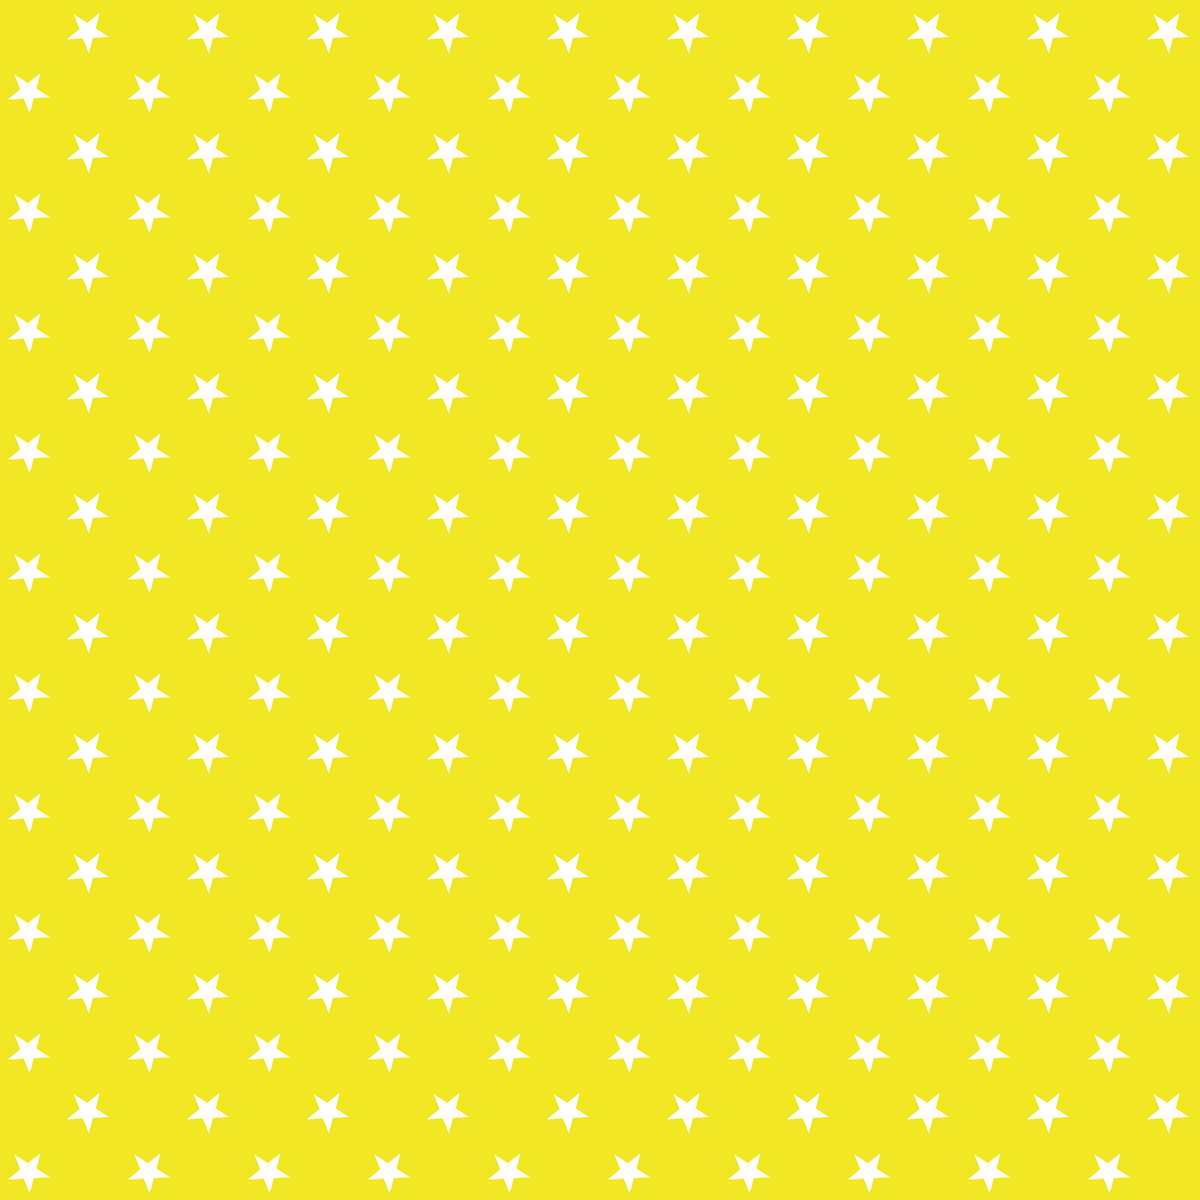 FREE printable polka dot pattern paper   yellow  FREE